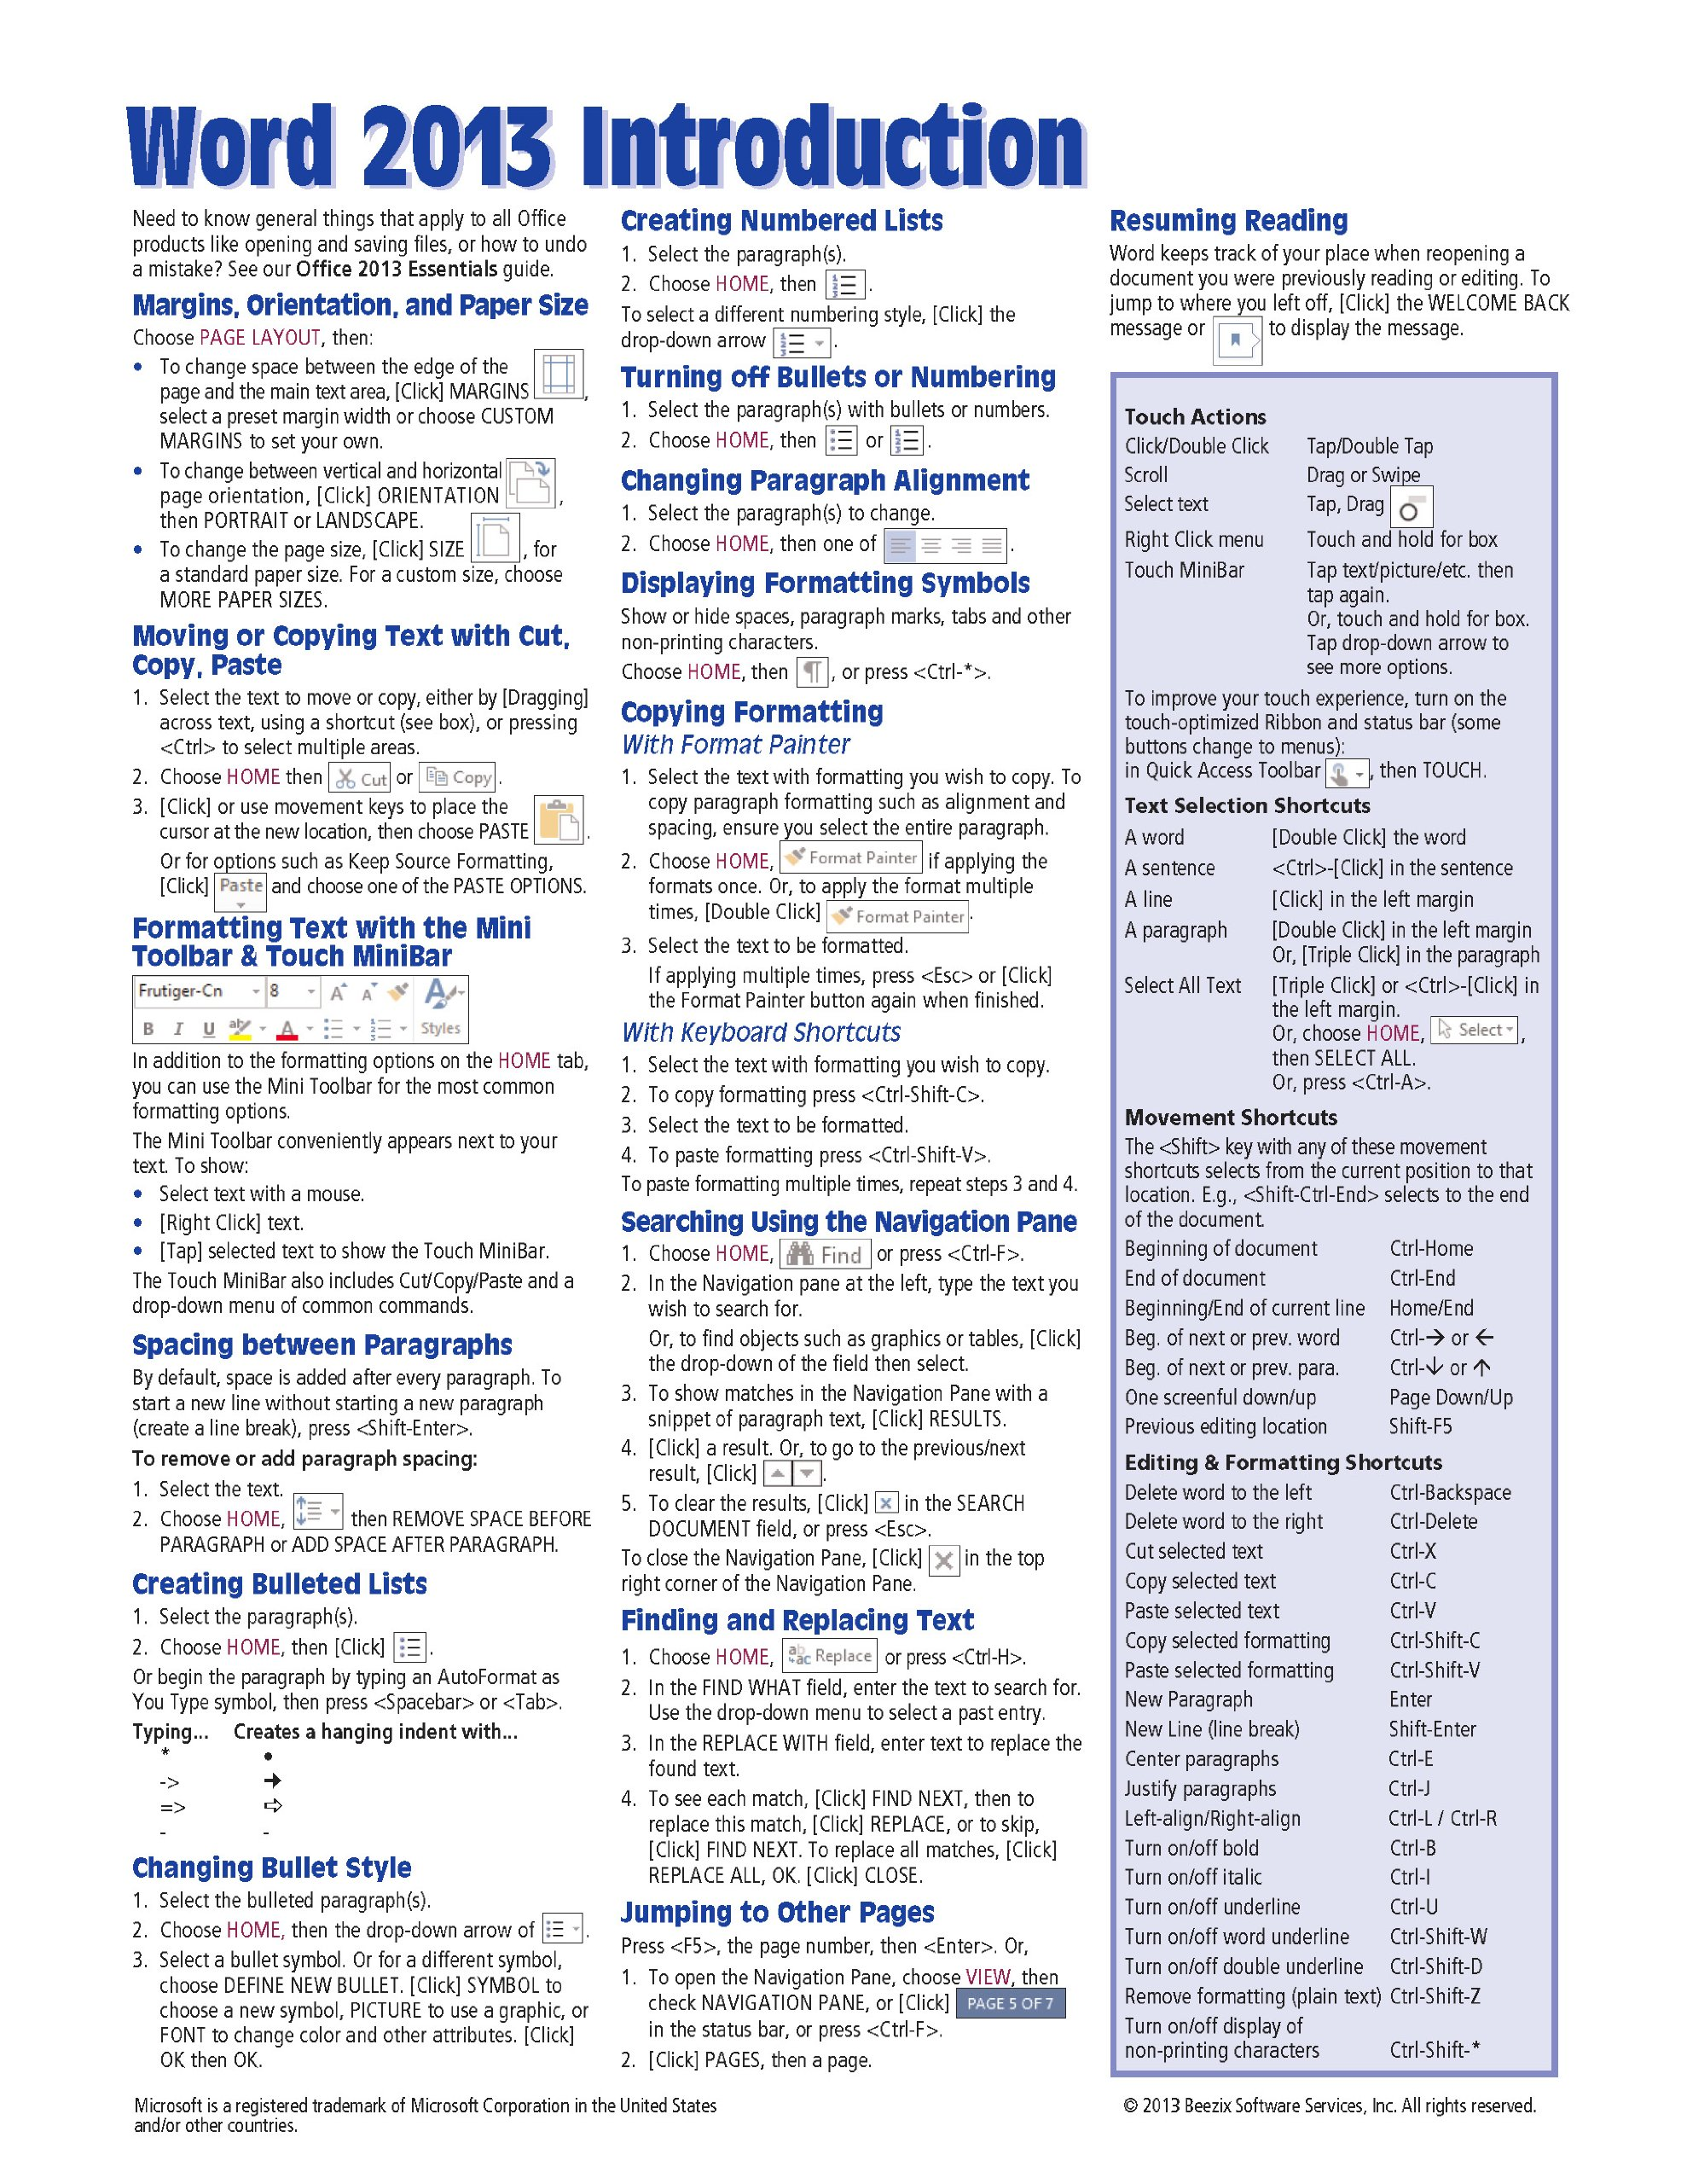 microsoft word sheet solid graphikworks co rh solid graphikworks co office 2013 quick reference guide pdf Project 2013 Quick Reference Guide